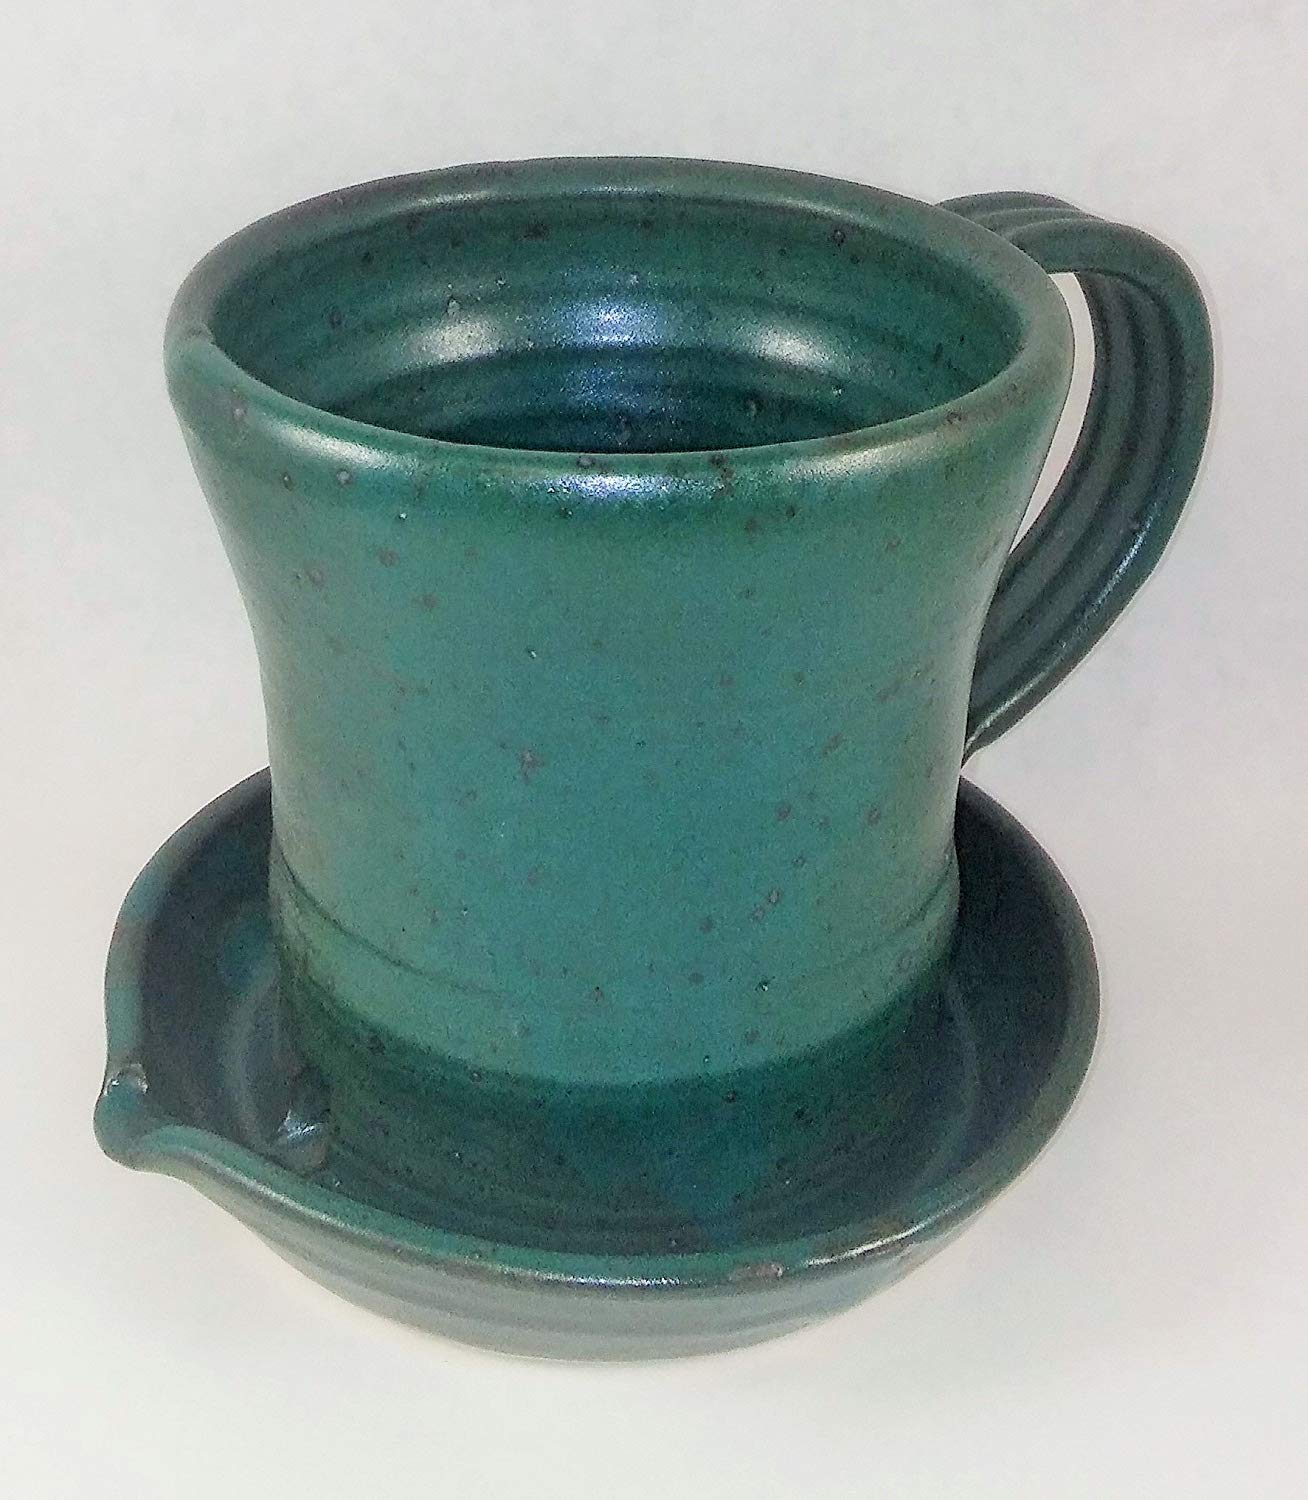 Aunt Chris' Pottery - Heavy Hand Made - Clay Bacon Cooker - Unique New Way of Cooking Bacon - Glazed Green Color